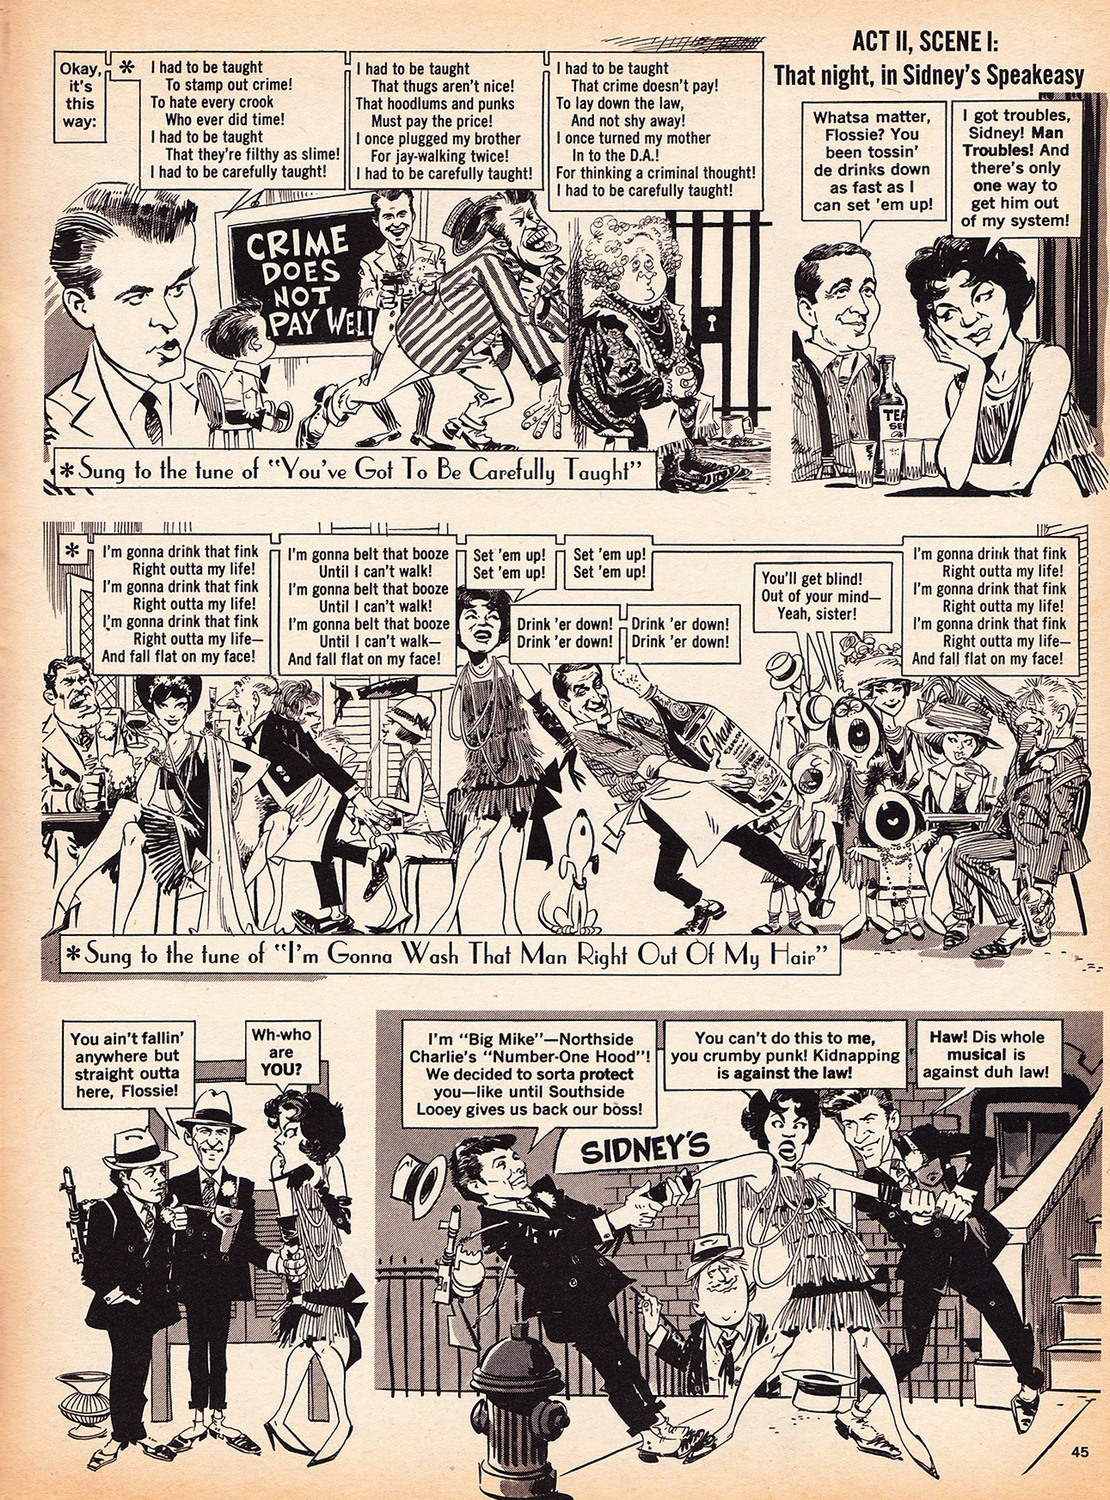 Mad nr. 71 (June 1962) 03 - kopie